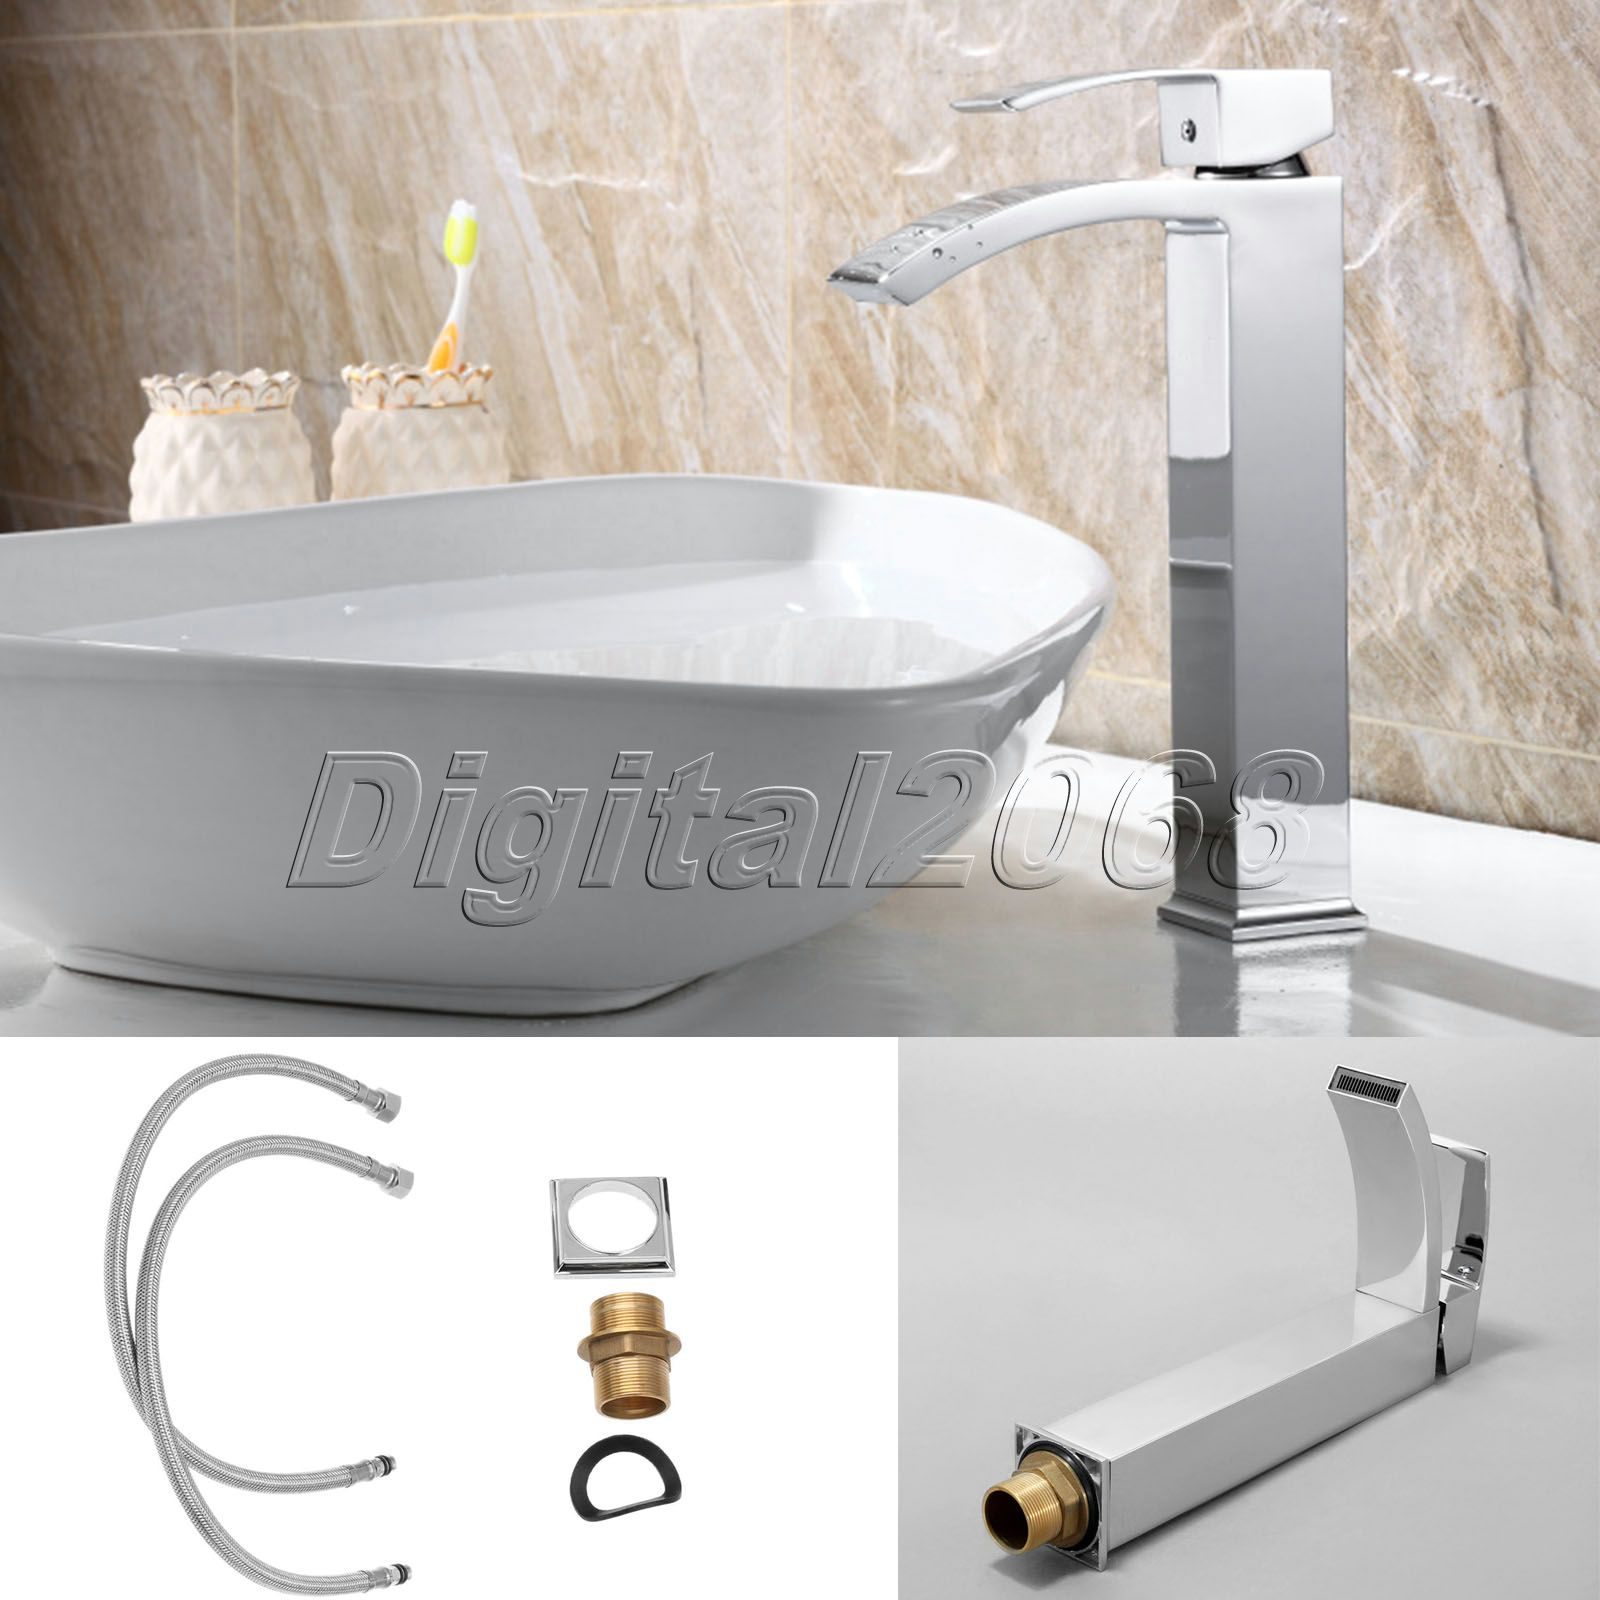 Ceramic Valve Spout Brushed Nickel Kitchen Faucet Bathroom Basin Faucet Vessel One Hole/Handle Chrome Sink Mixer Basin Tap 55 led spout swivel spout kitchen faucet vessel sink mixer tap chrome finish solid brass free shipping hot sale